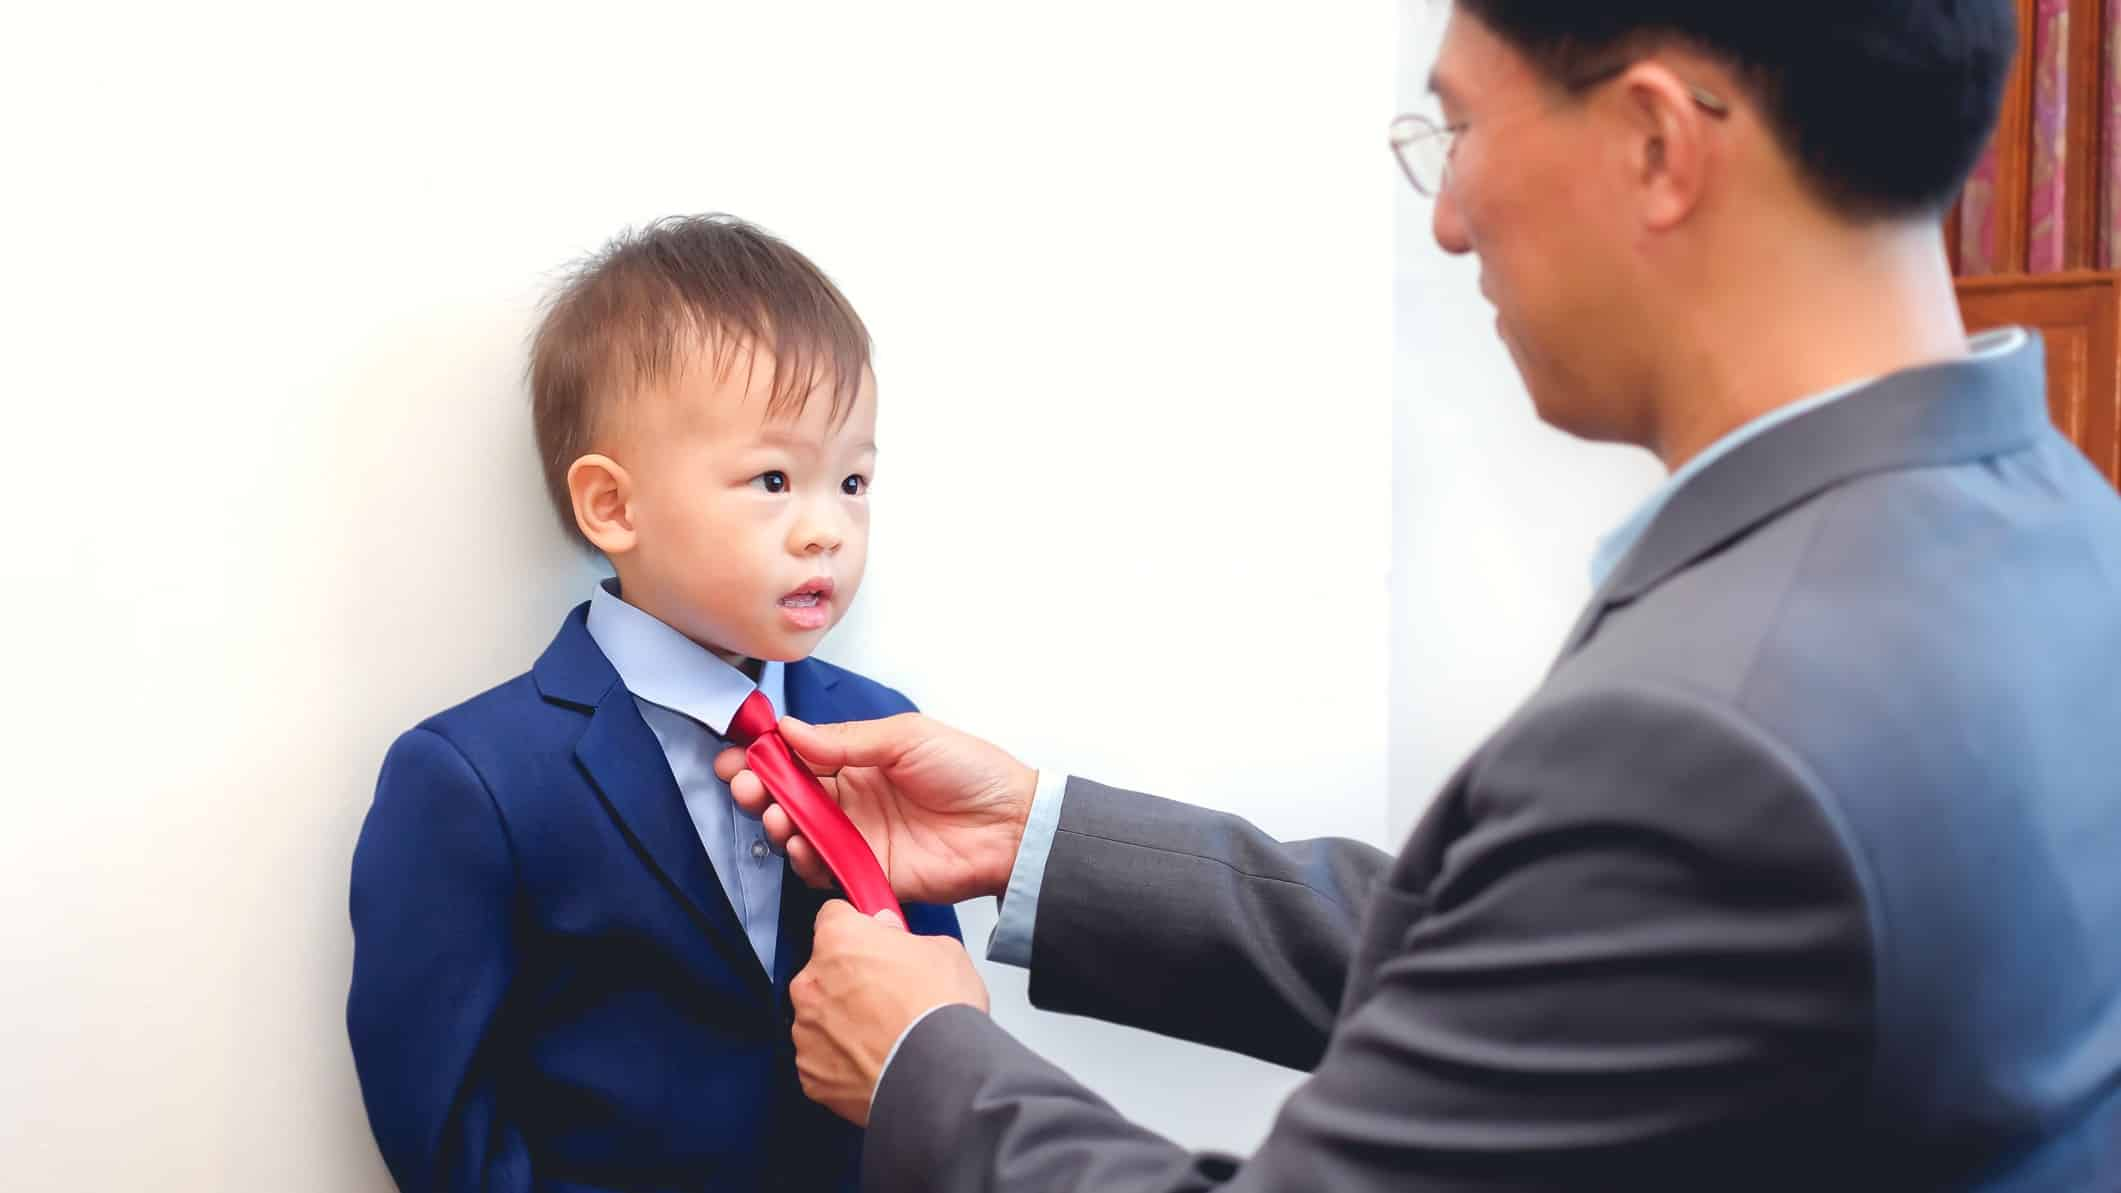 business man adjusting suit and tie on his young son representing a family business